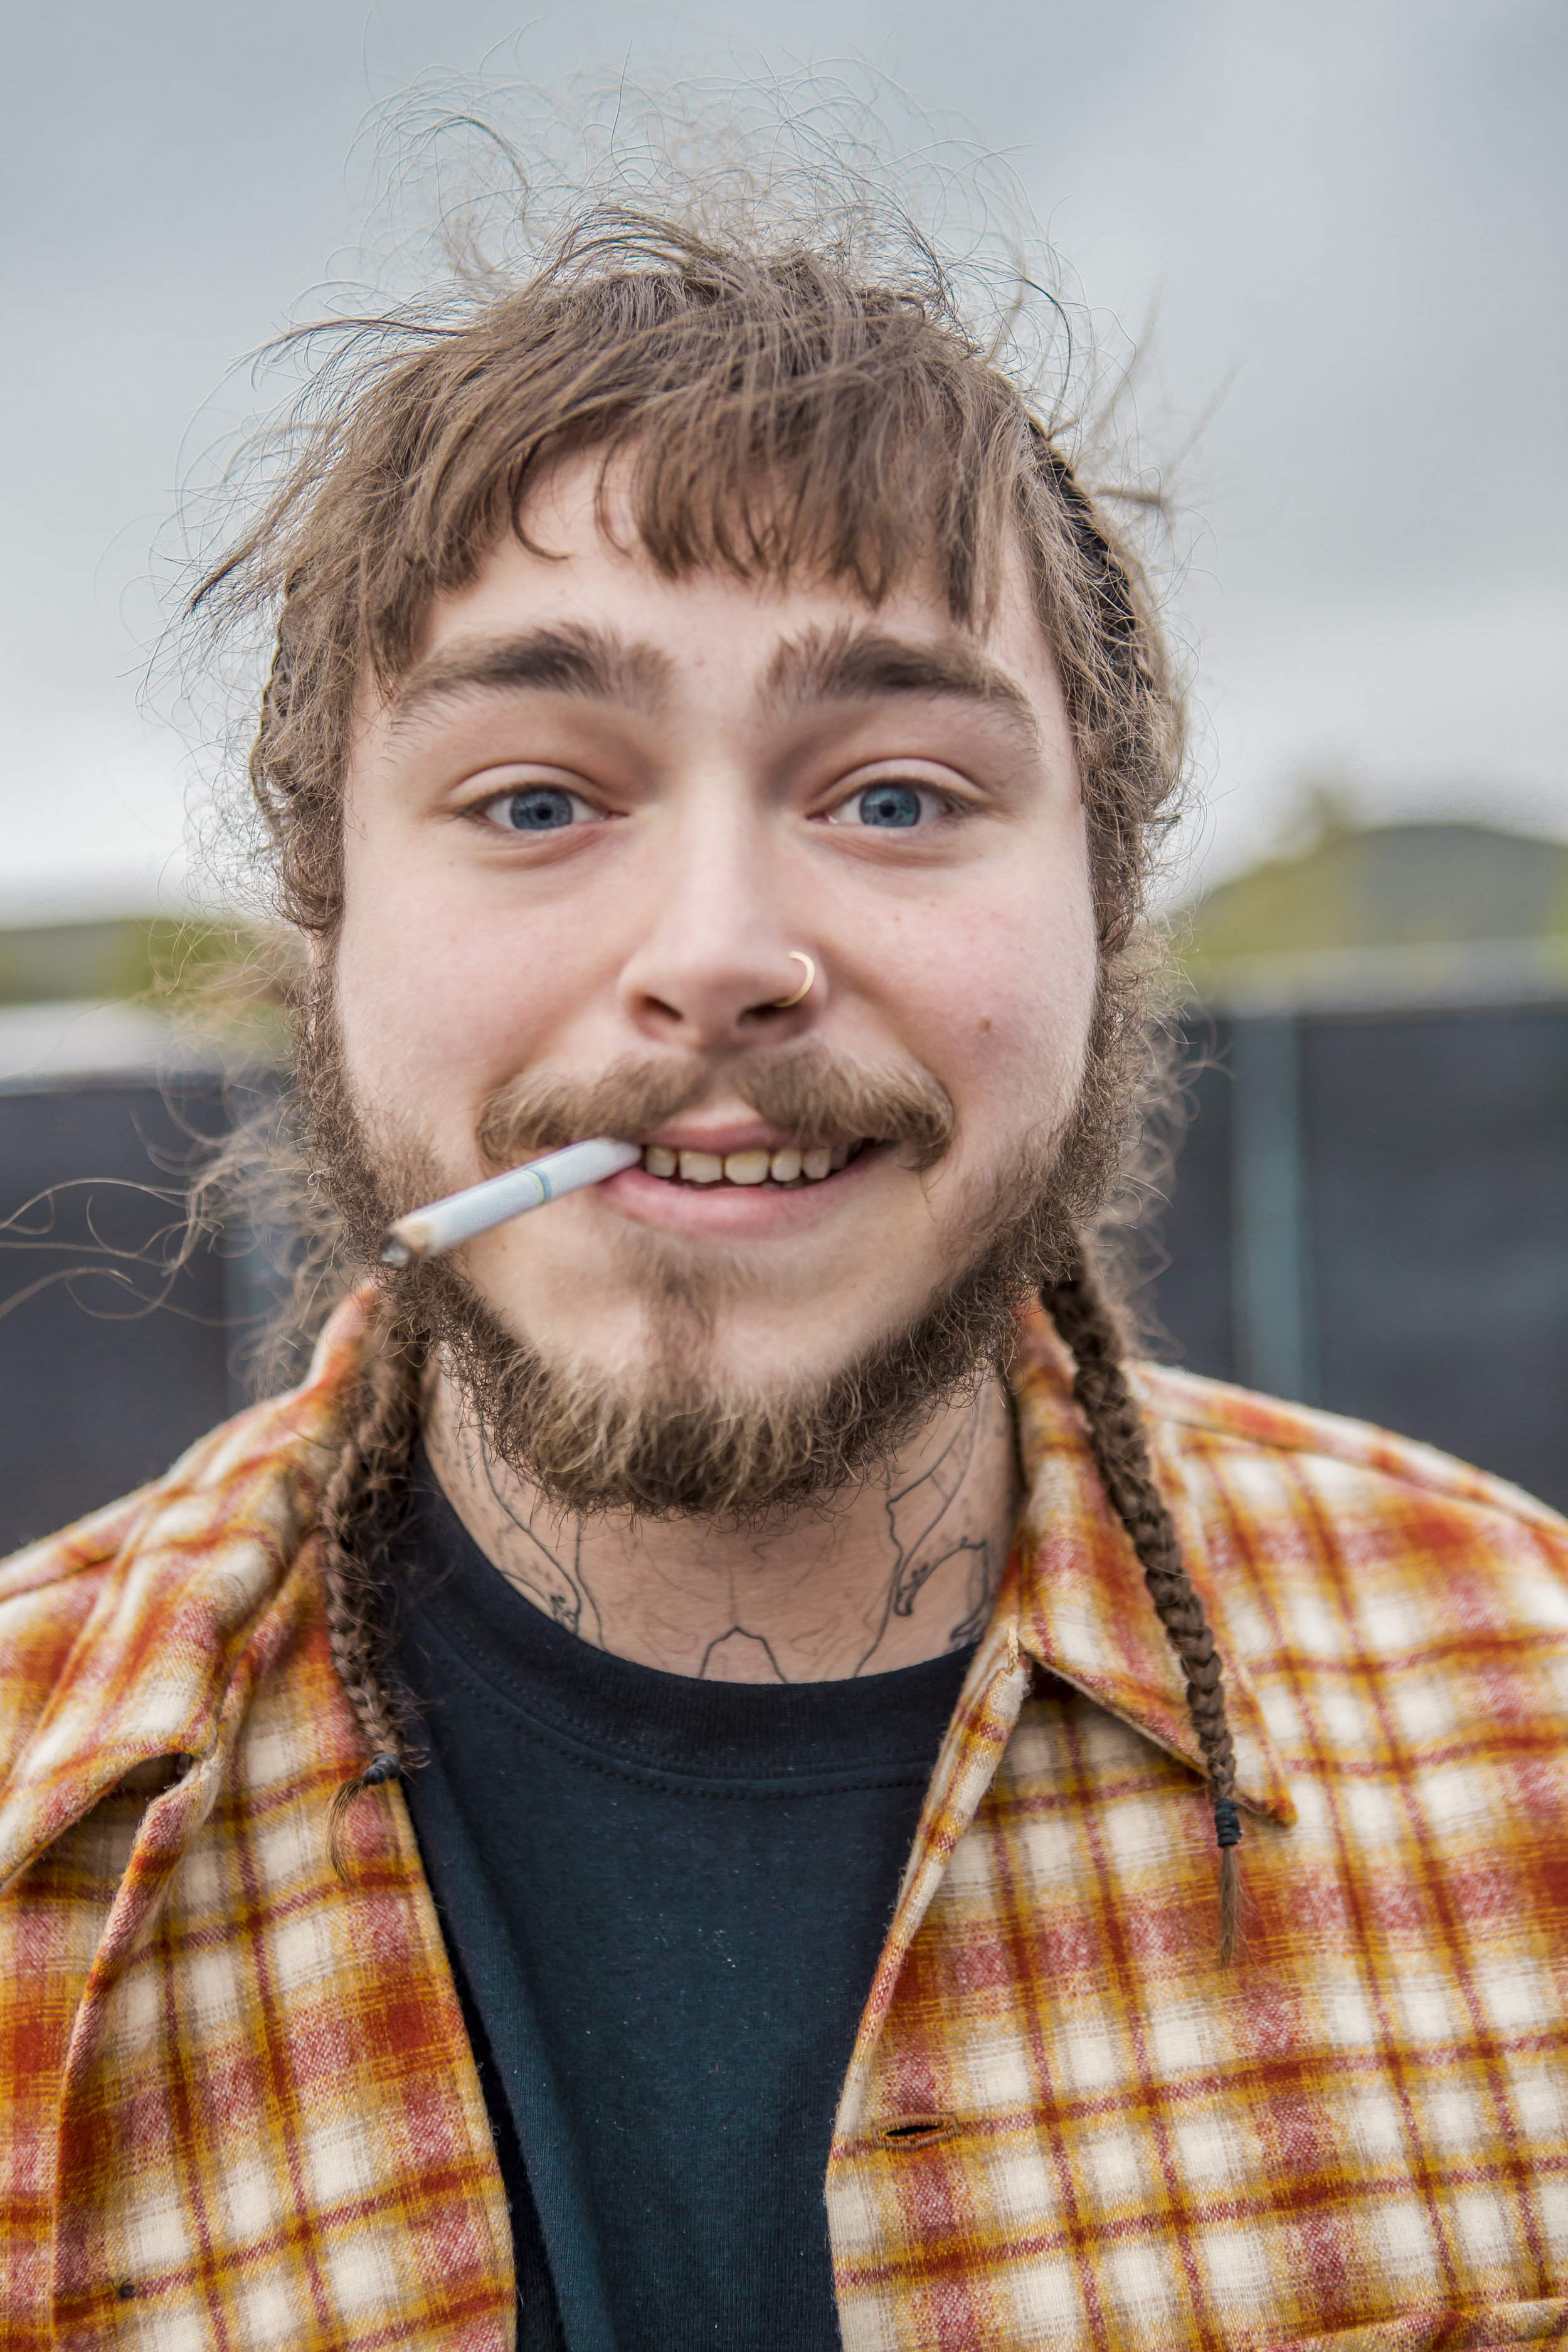 Armen Keleshian - Post Malone - 13 Photographers Taking Pictures of Your Favorite Rapper - FilterGrade